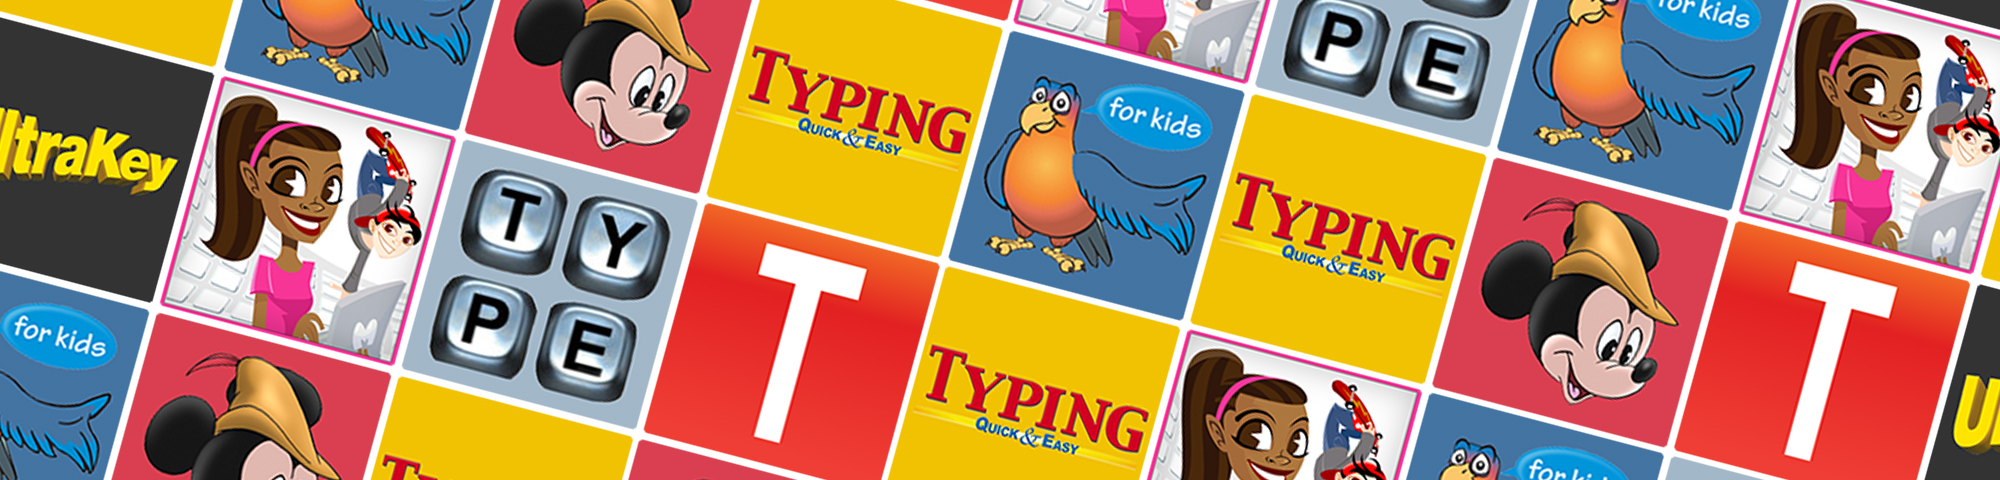 Best Typing Programs for Kids 2019 - Software and Lesson Reviews